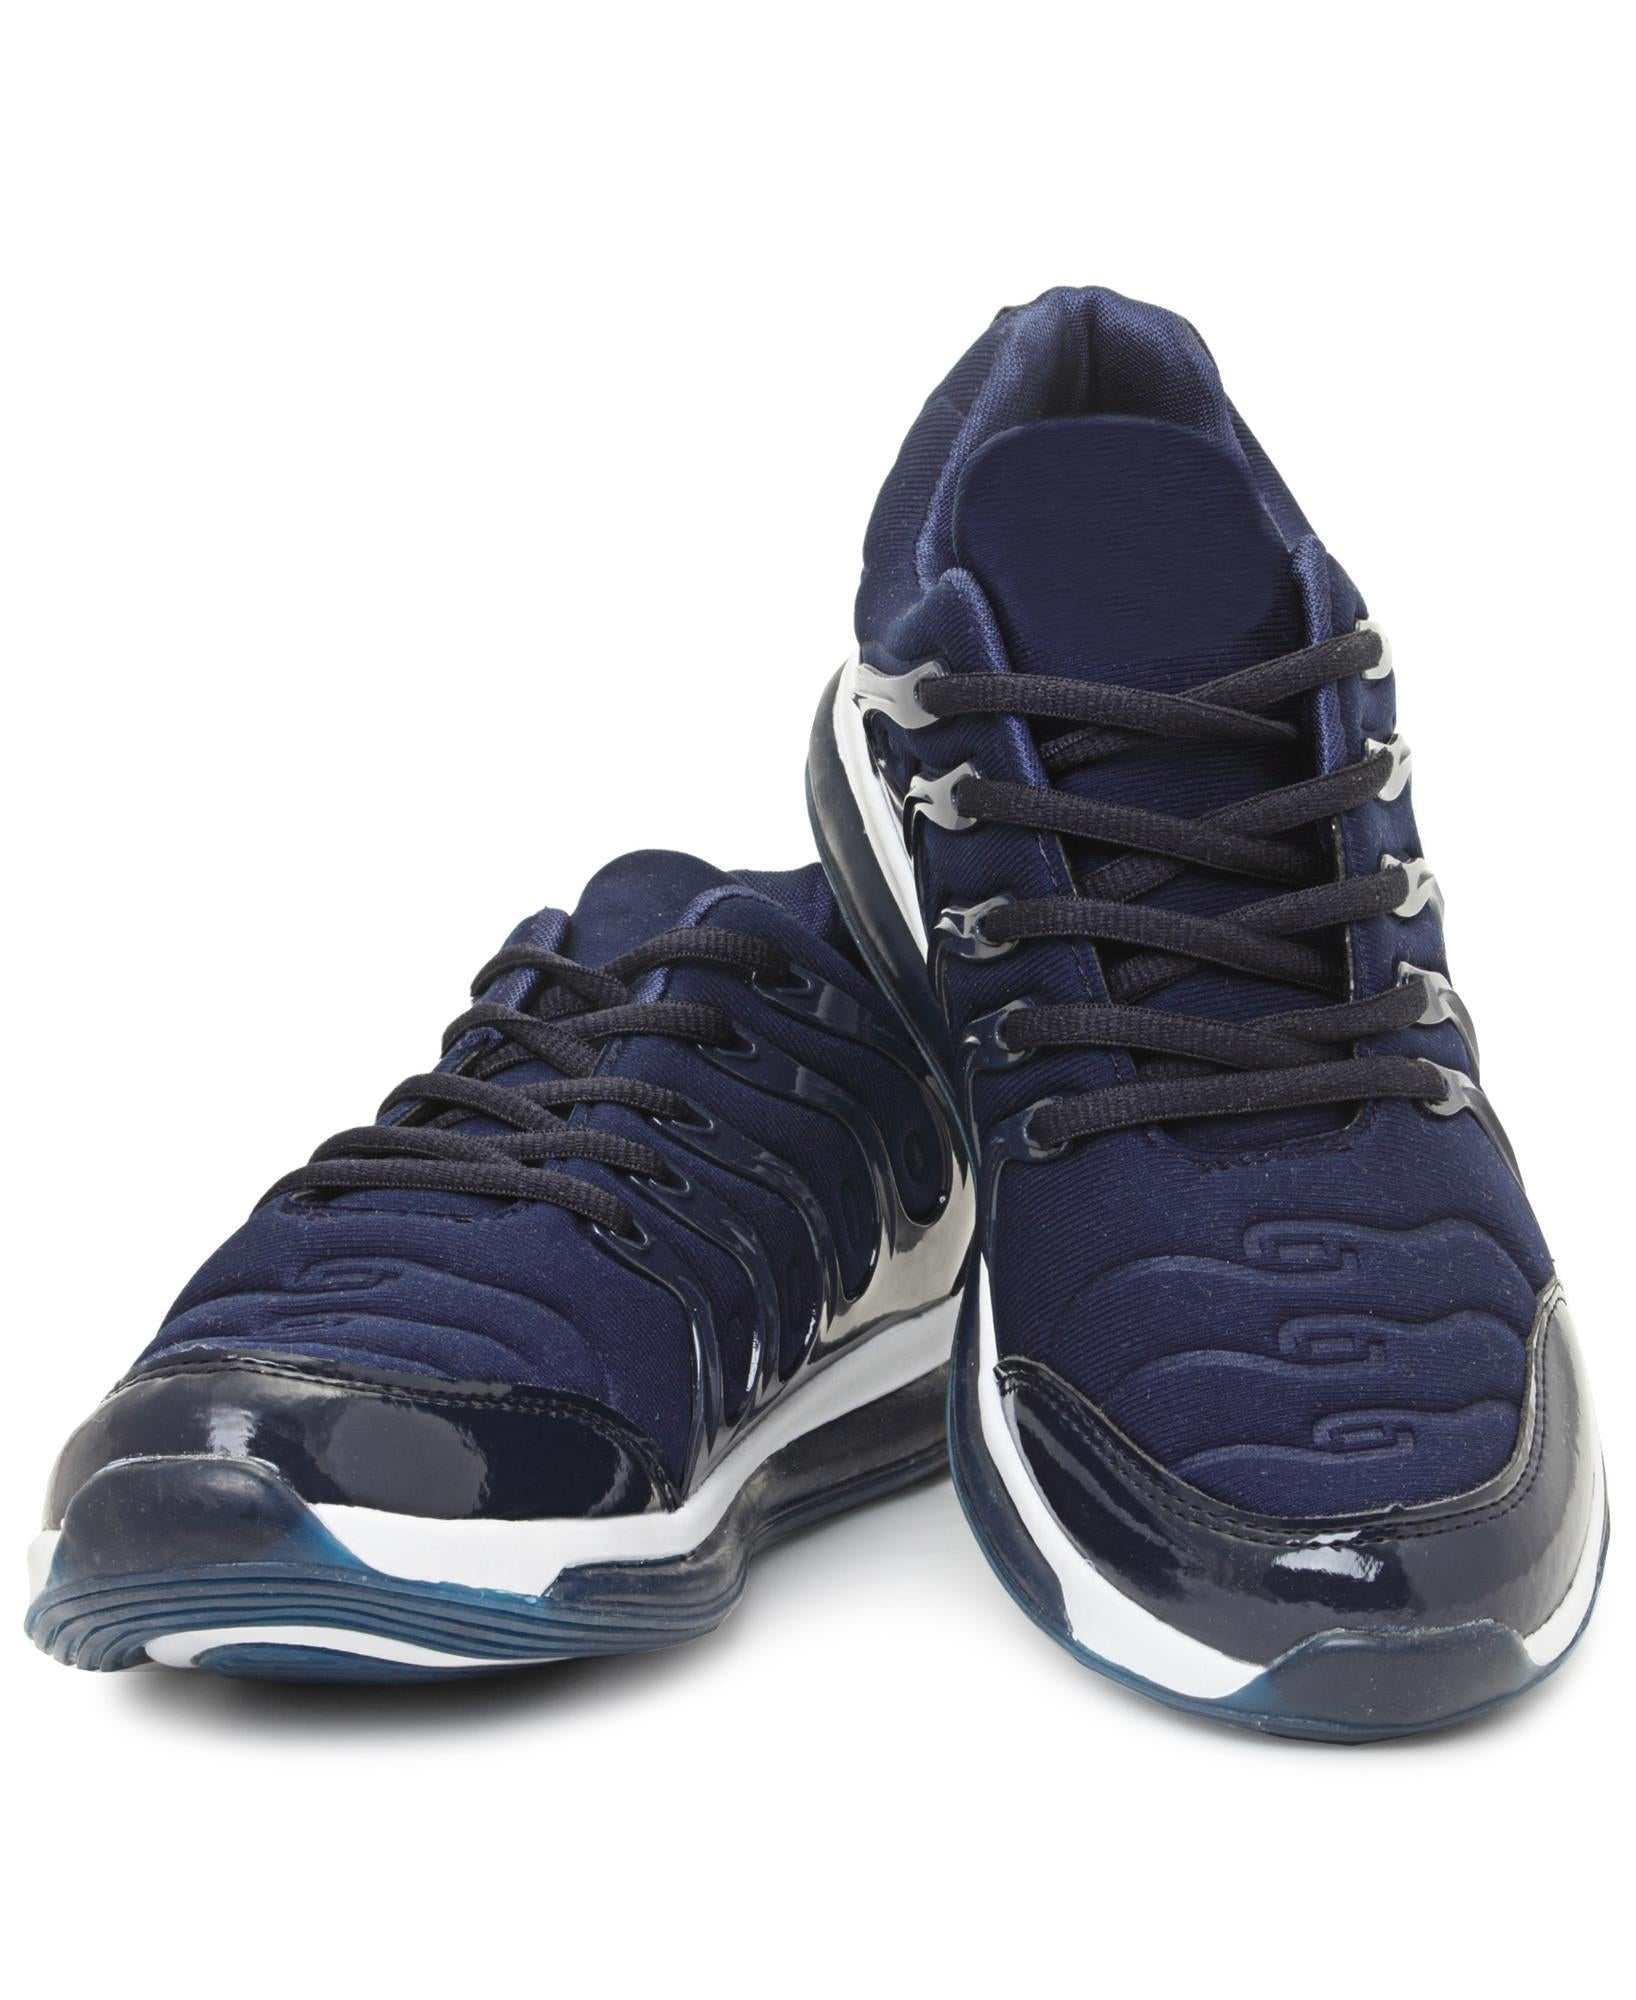 Men's Casual Sneakers - Navy